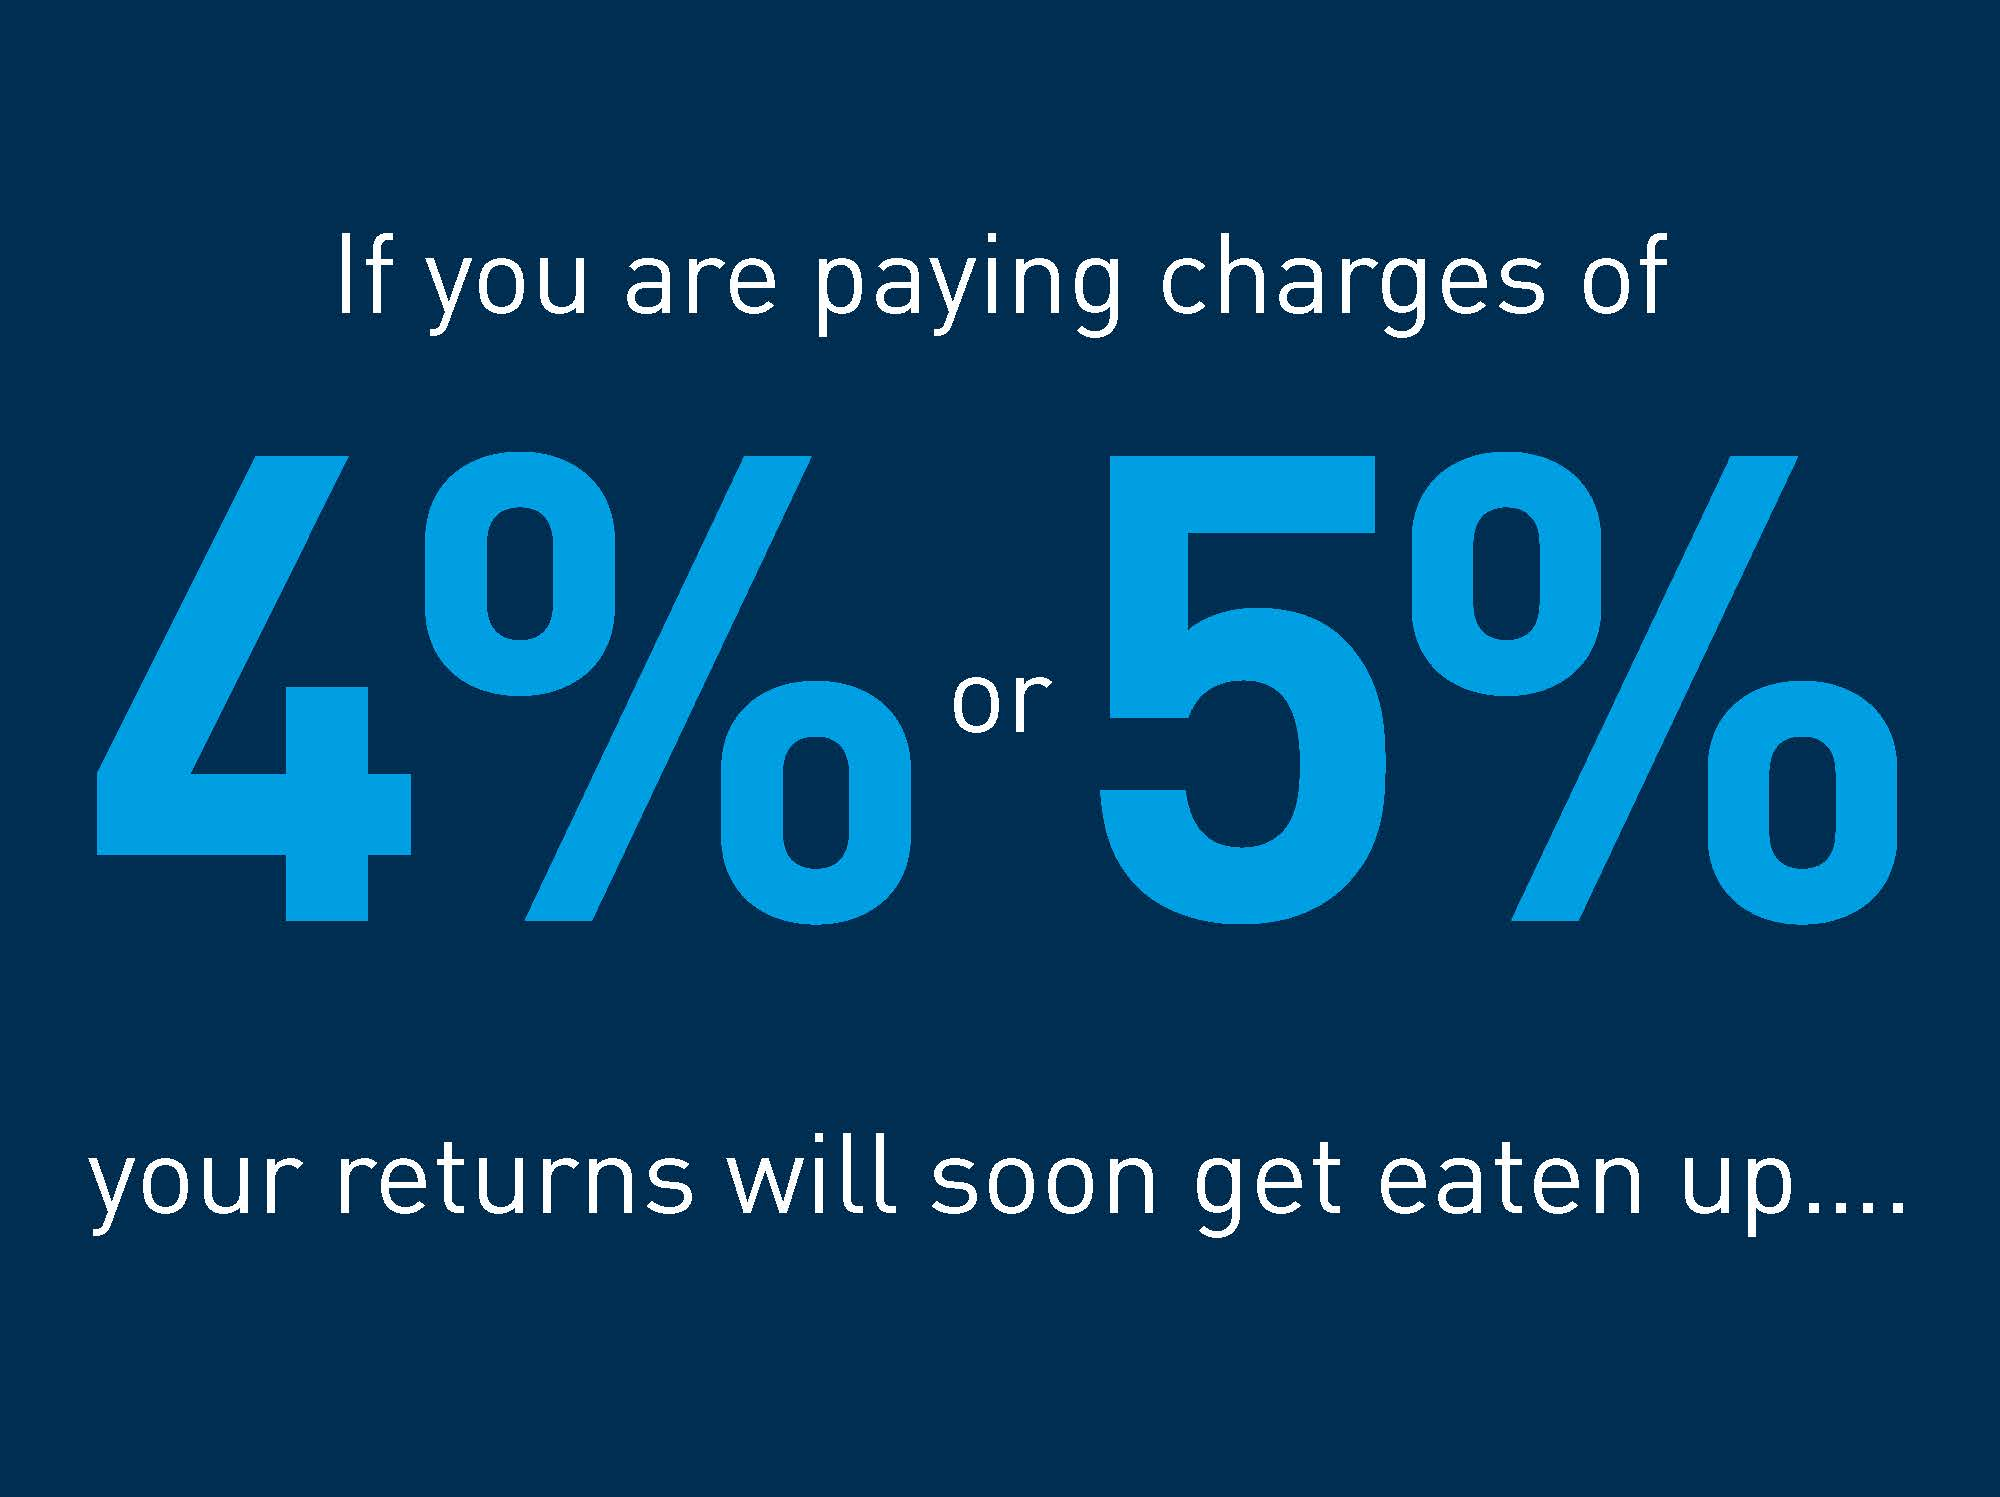 Returns are eaten up by charges